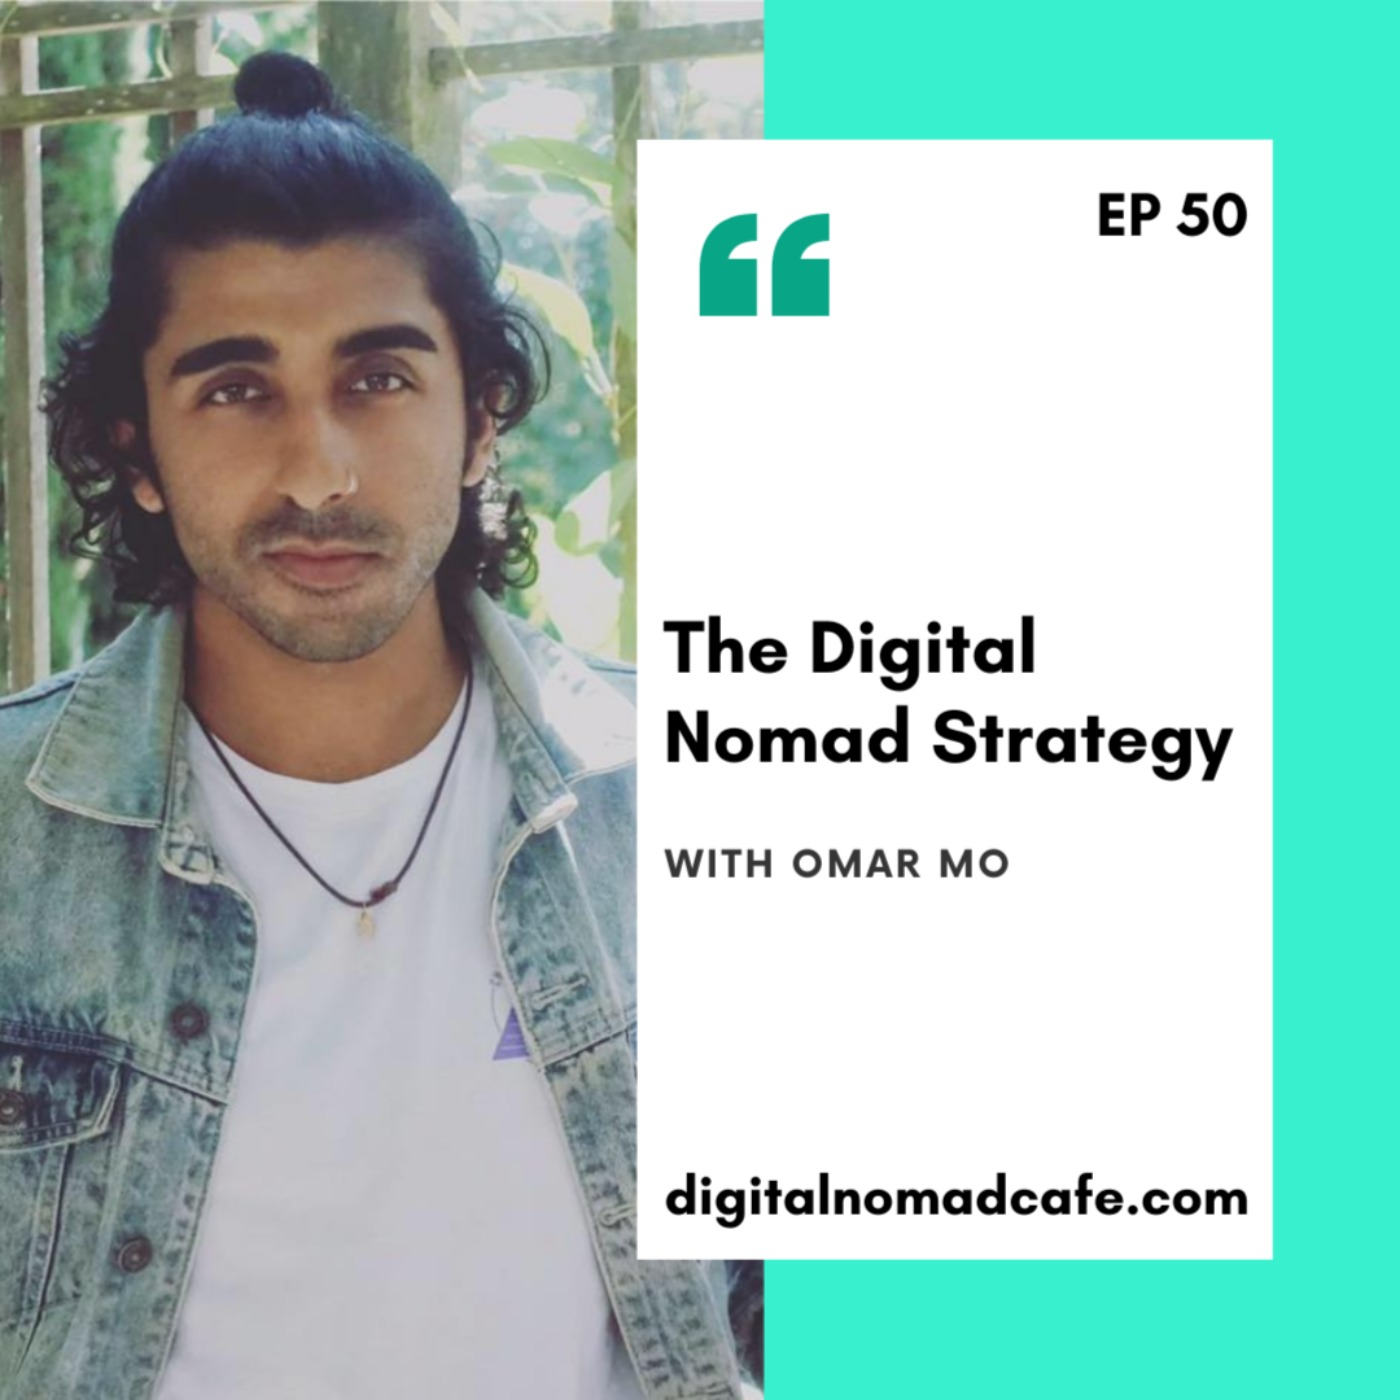 The Digital Nomad Strategy With Omar Mo